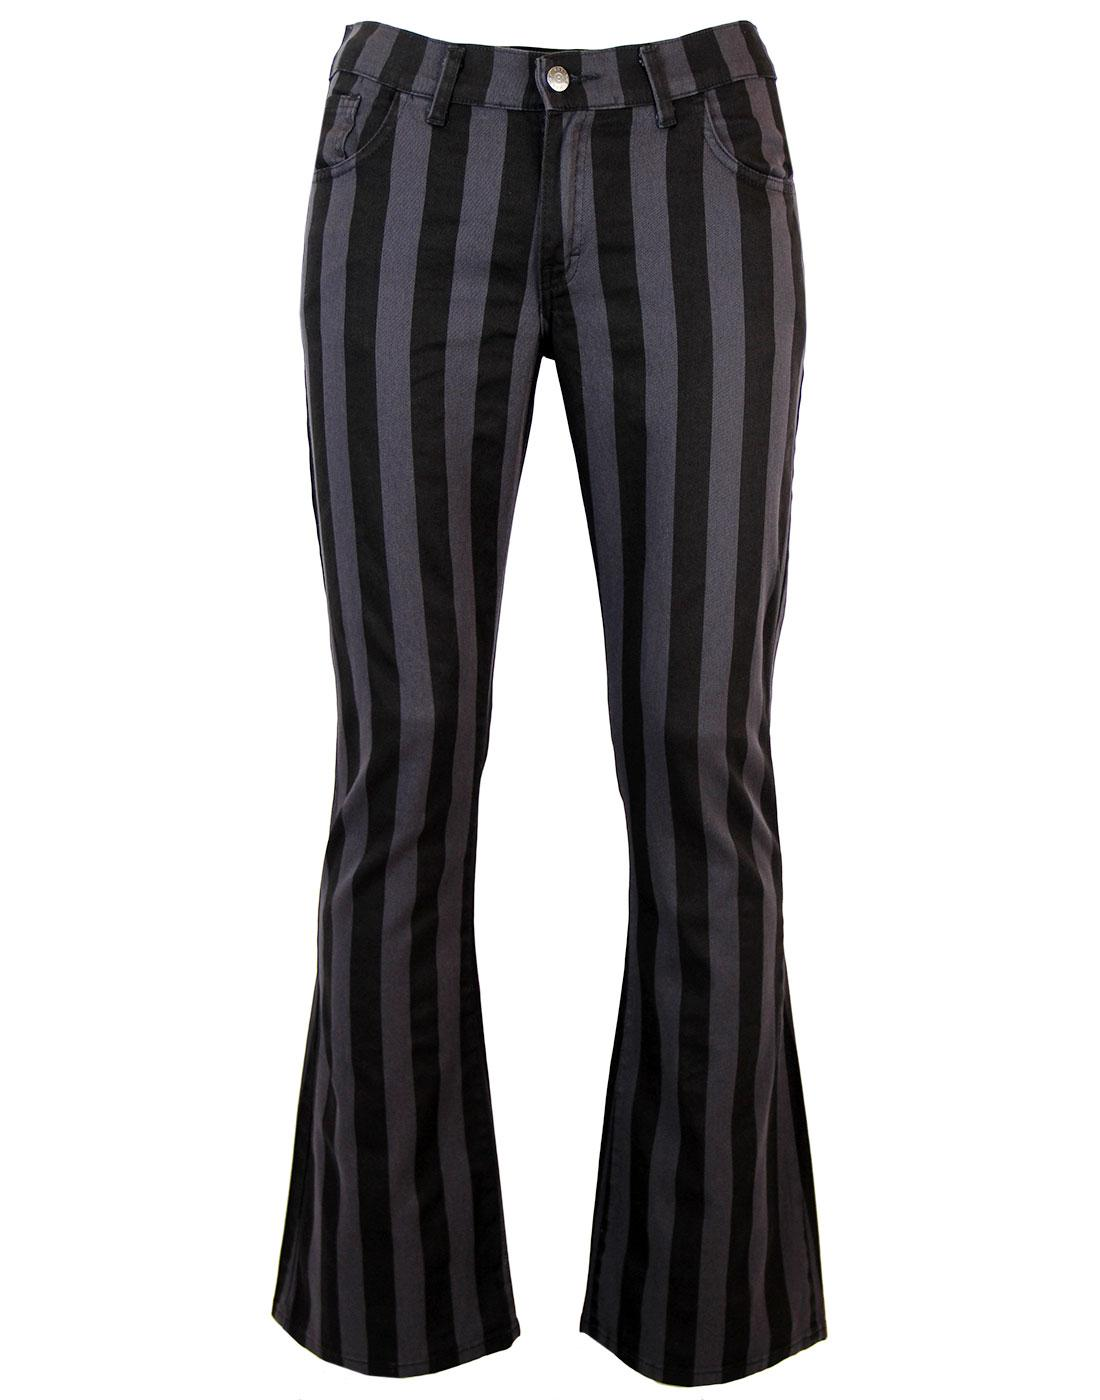 Holy Roller - Retro 60s Striped 70s Indie Flares B